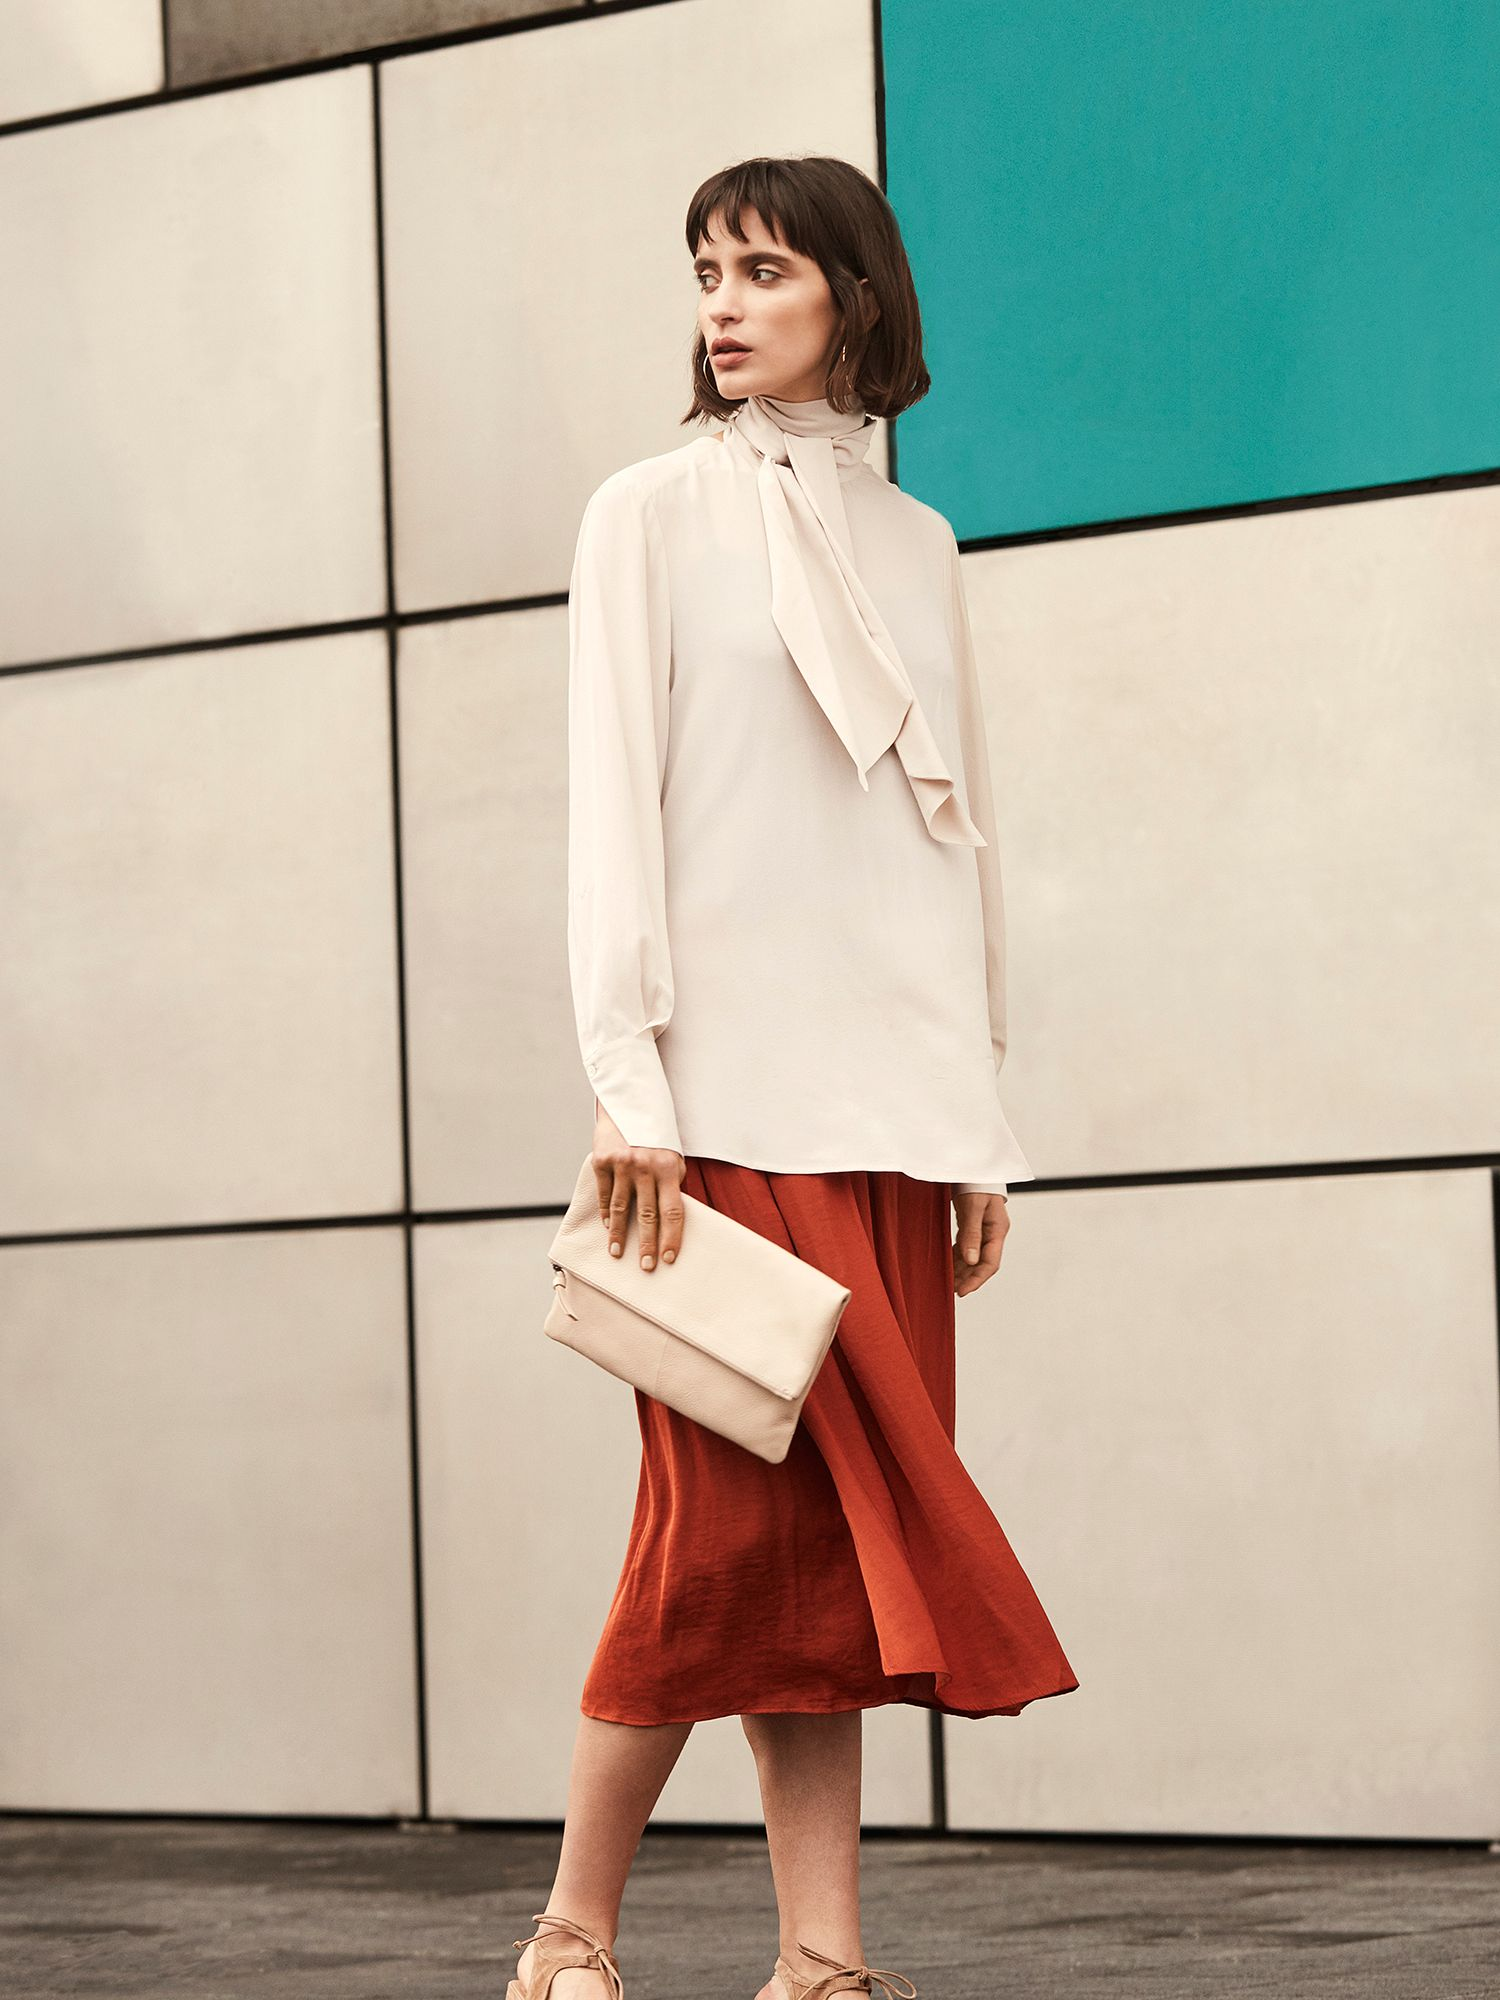 woman wearing a white blouse and satin skirt